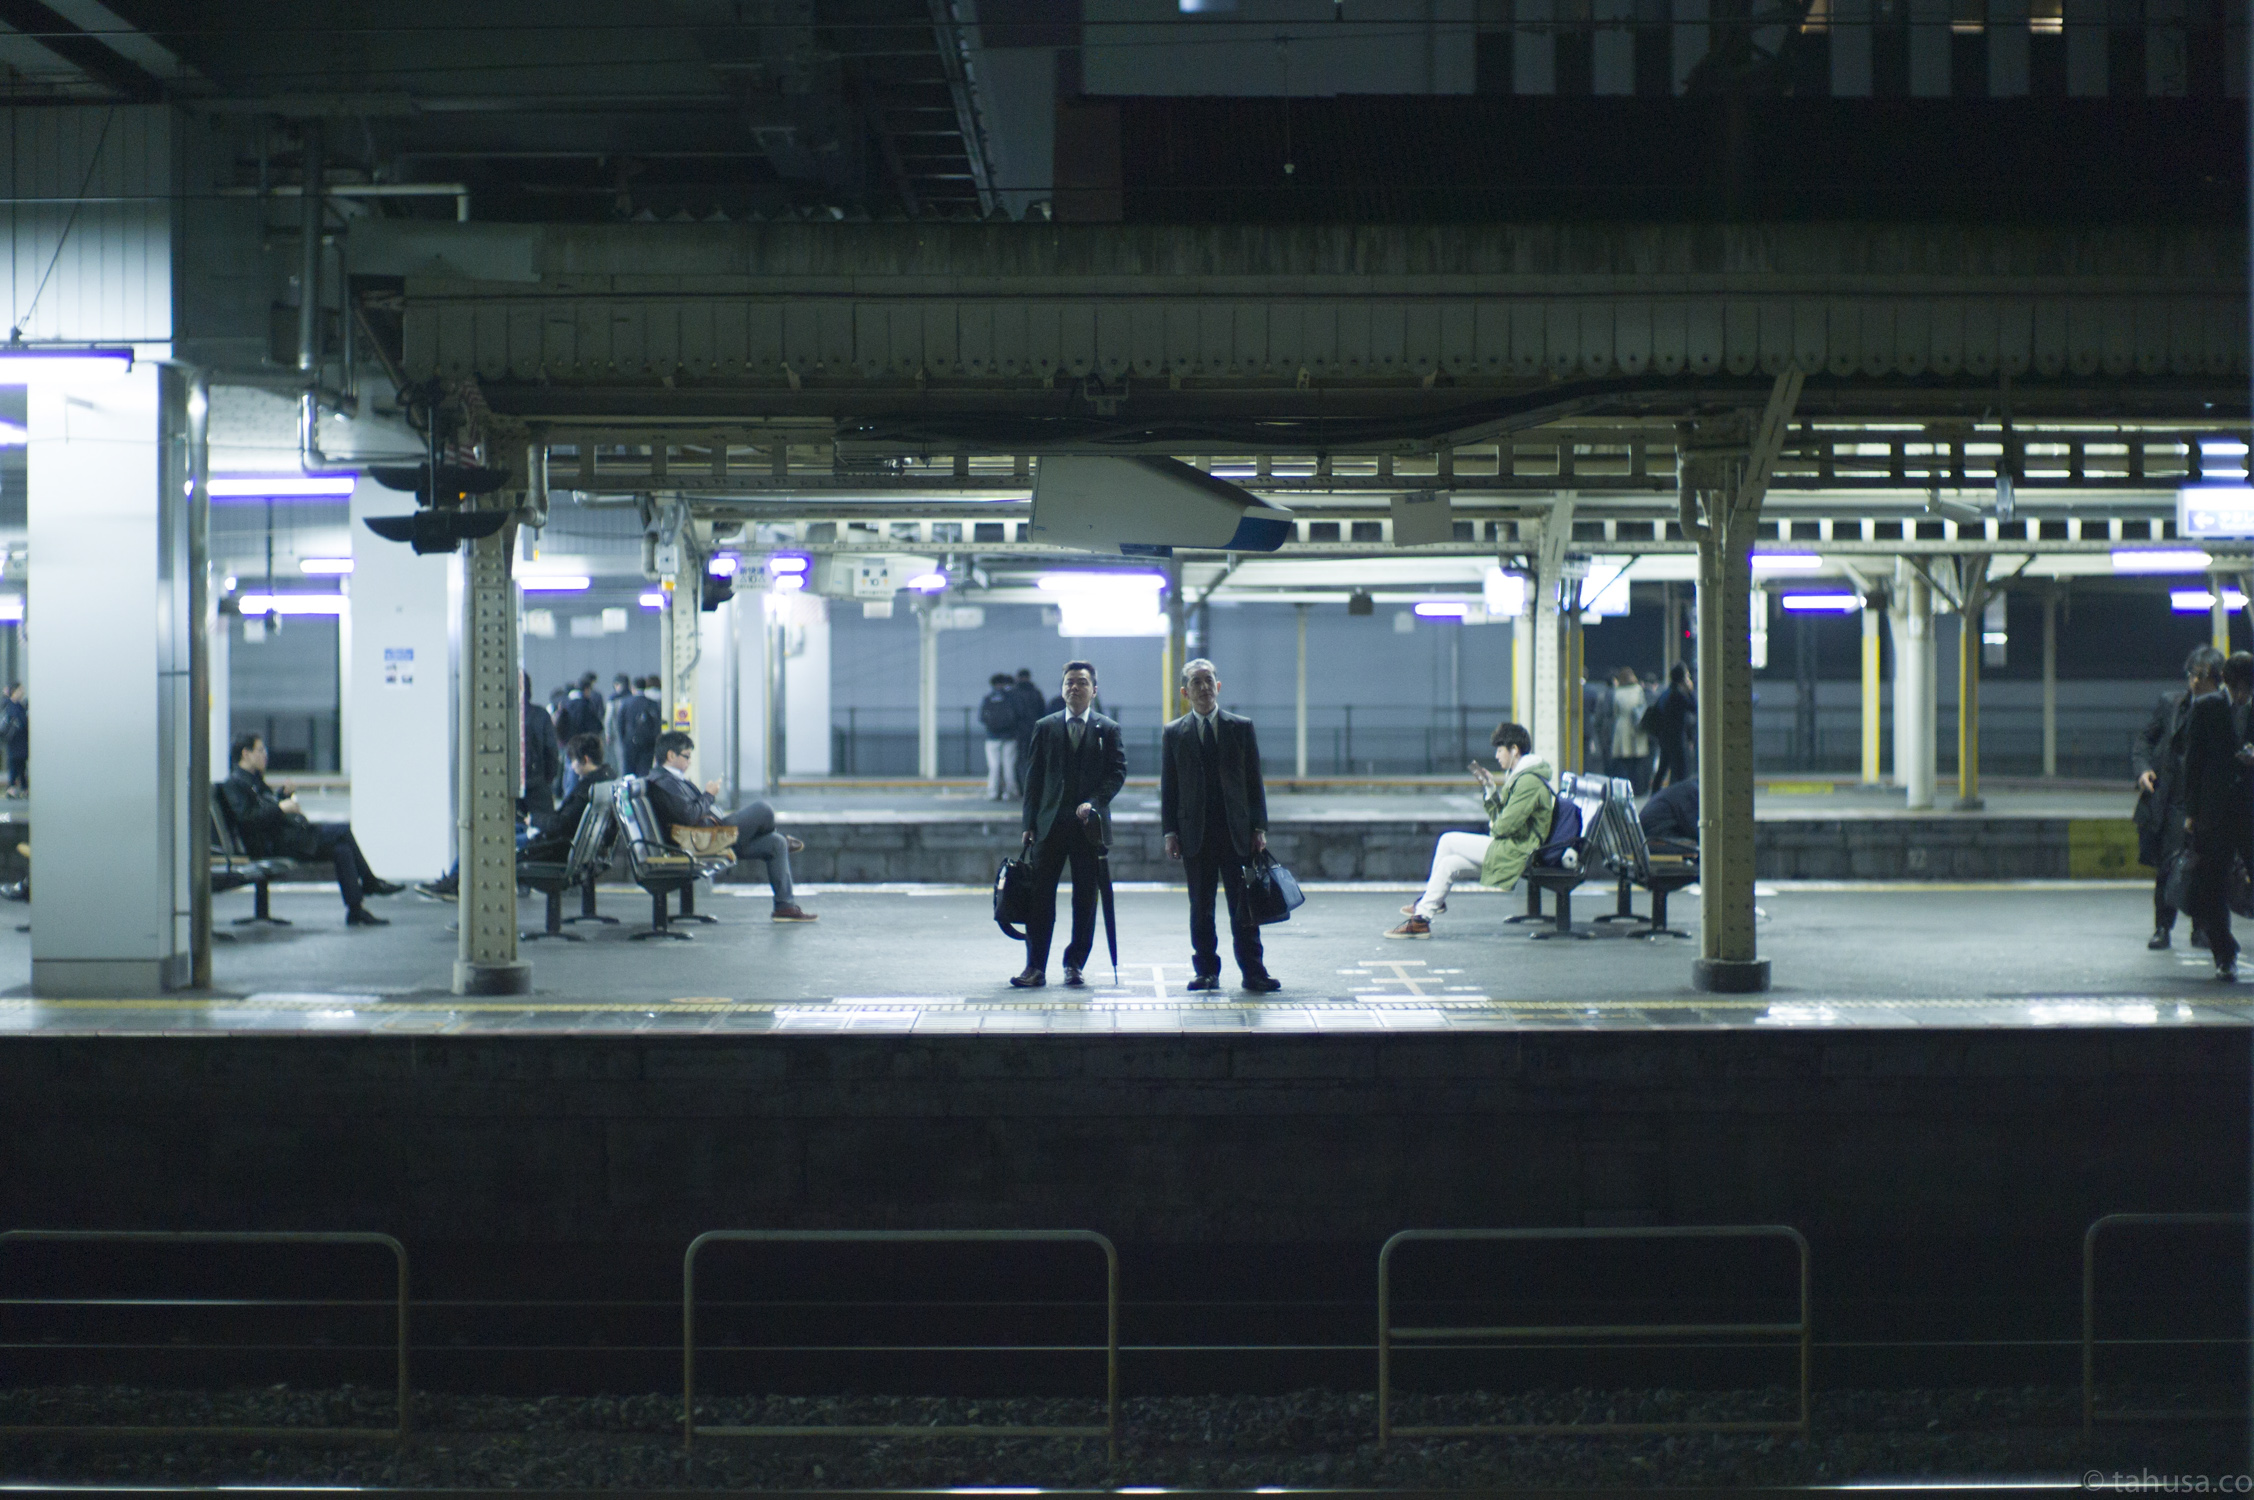 JR-station-movie-scene-man-standing-next-to-each-other-waiting-for-train-coming-kyoto-japan-japanese-street-snap-portrait-using-leica-m9-m9p-Noctilux-50mm-50-f1-f1.0-e58-v1-digital-camera-travel